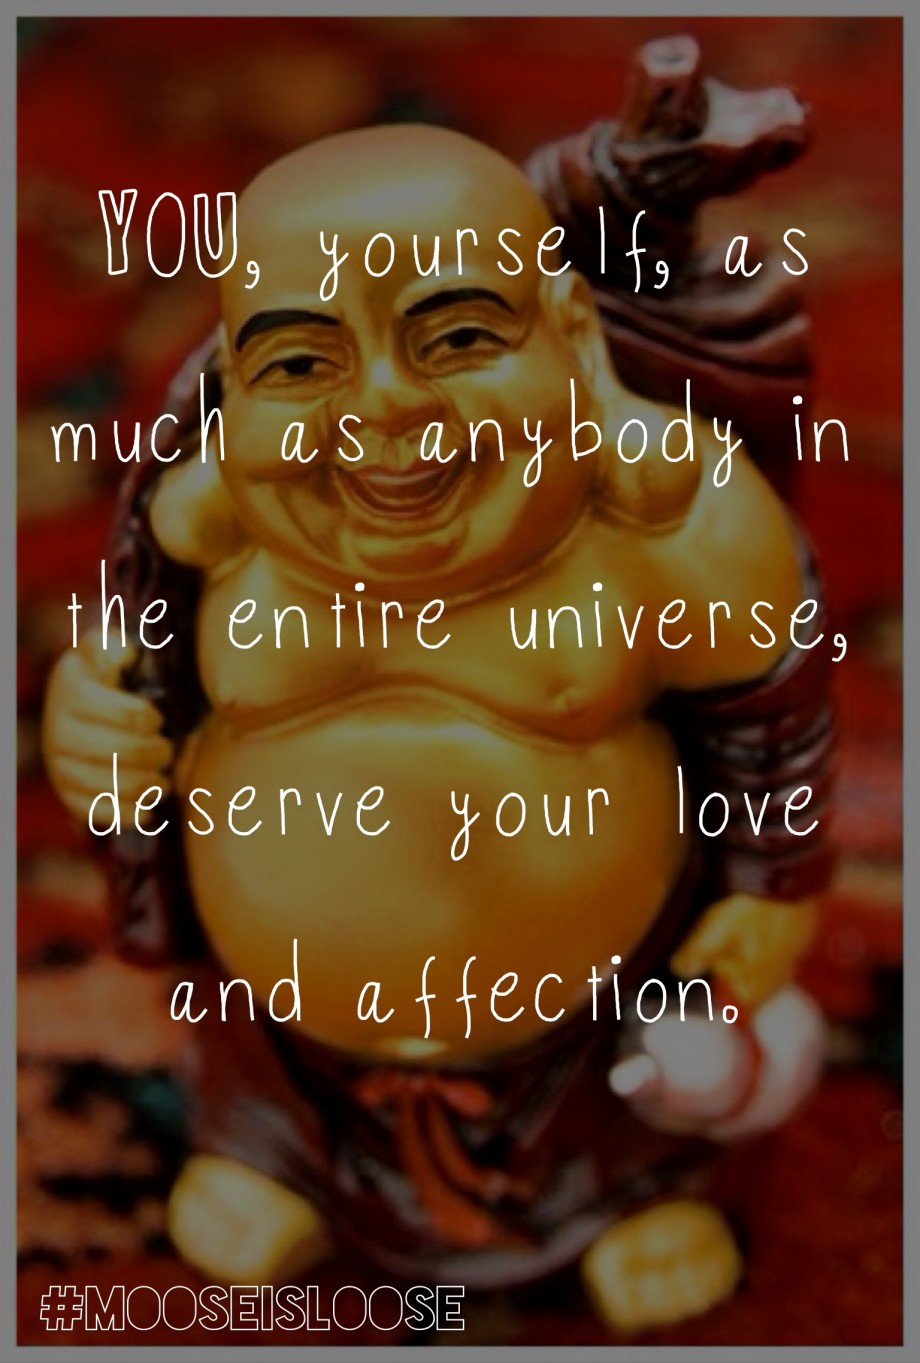 Buddhist Quotes On Love Adorable 10 Awesome Buddha Quotes That Will Inspire And Motivate You